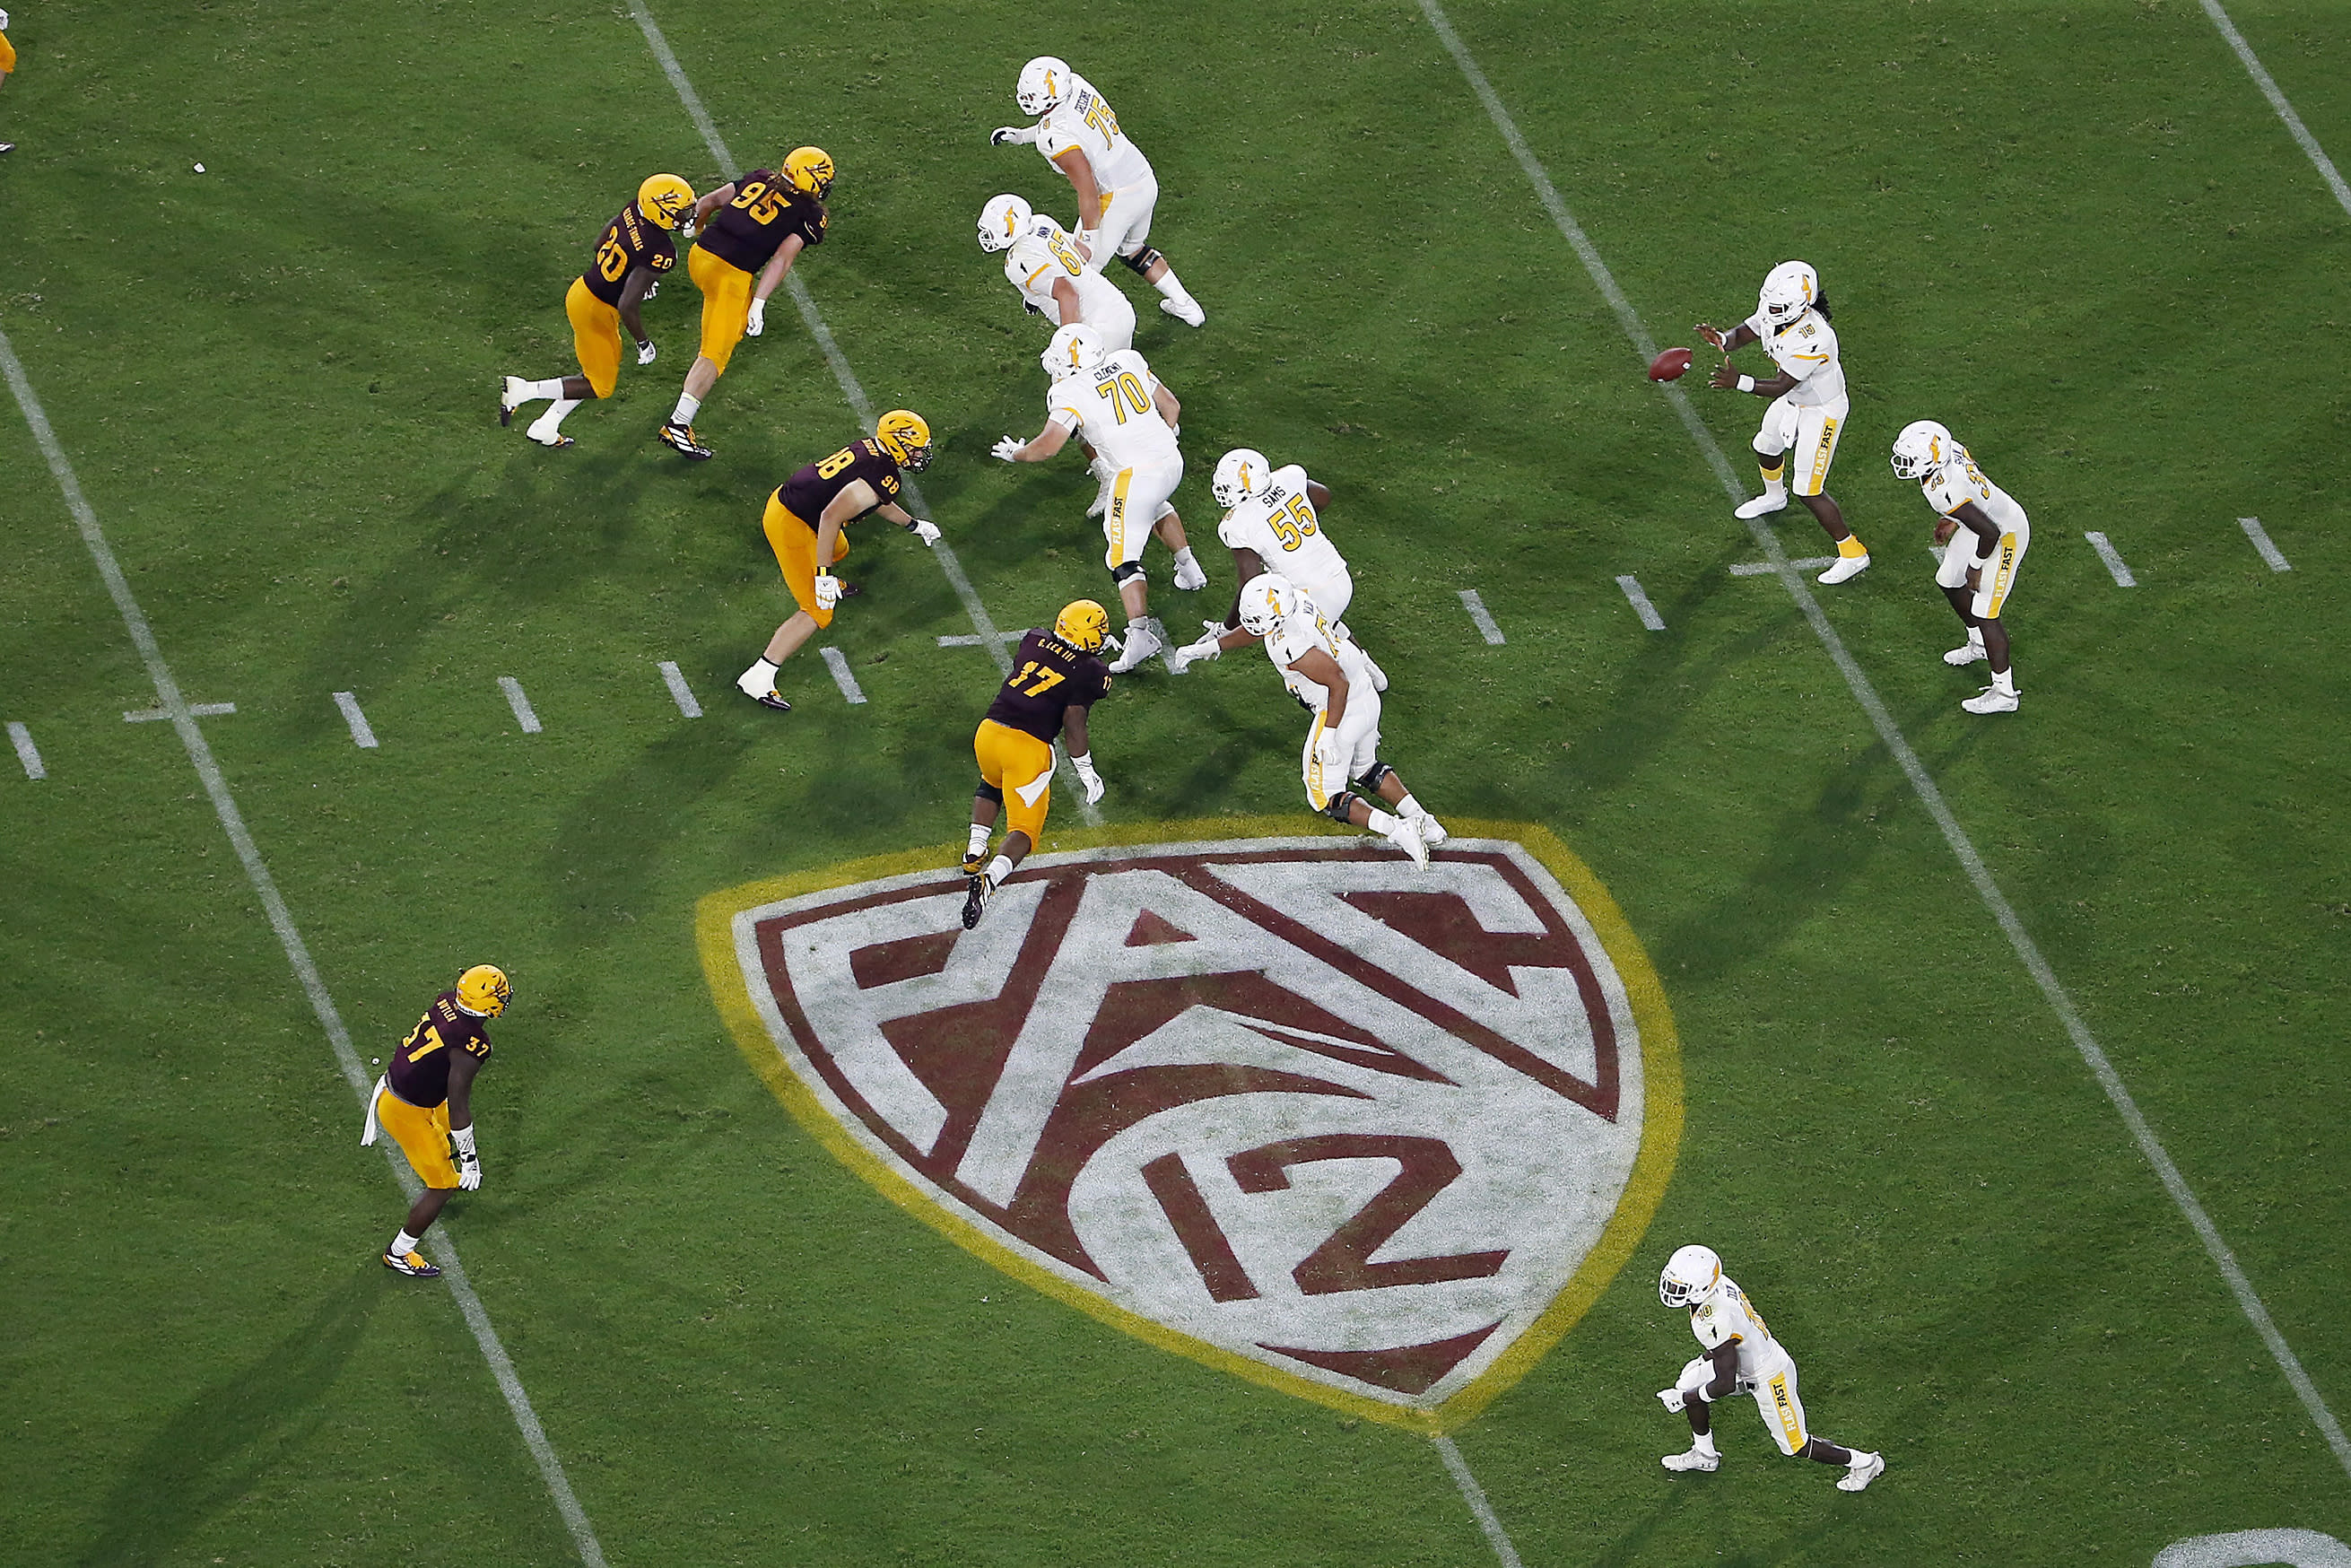 Back to normal: Pac-12 returns, still faces long College Football Playoff odds